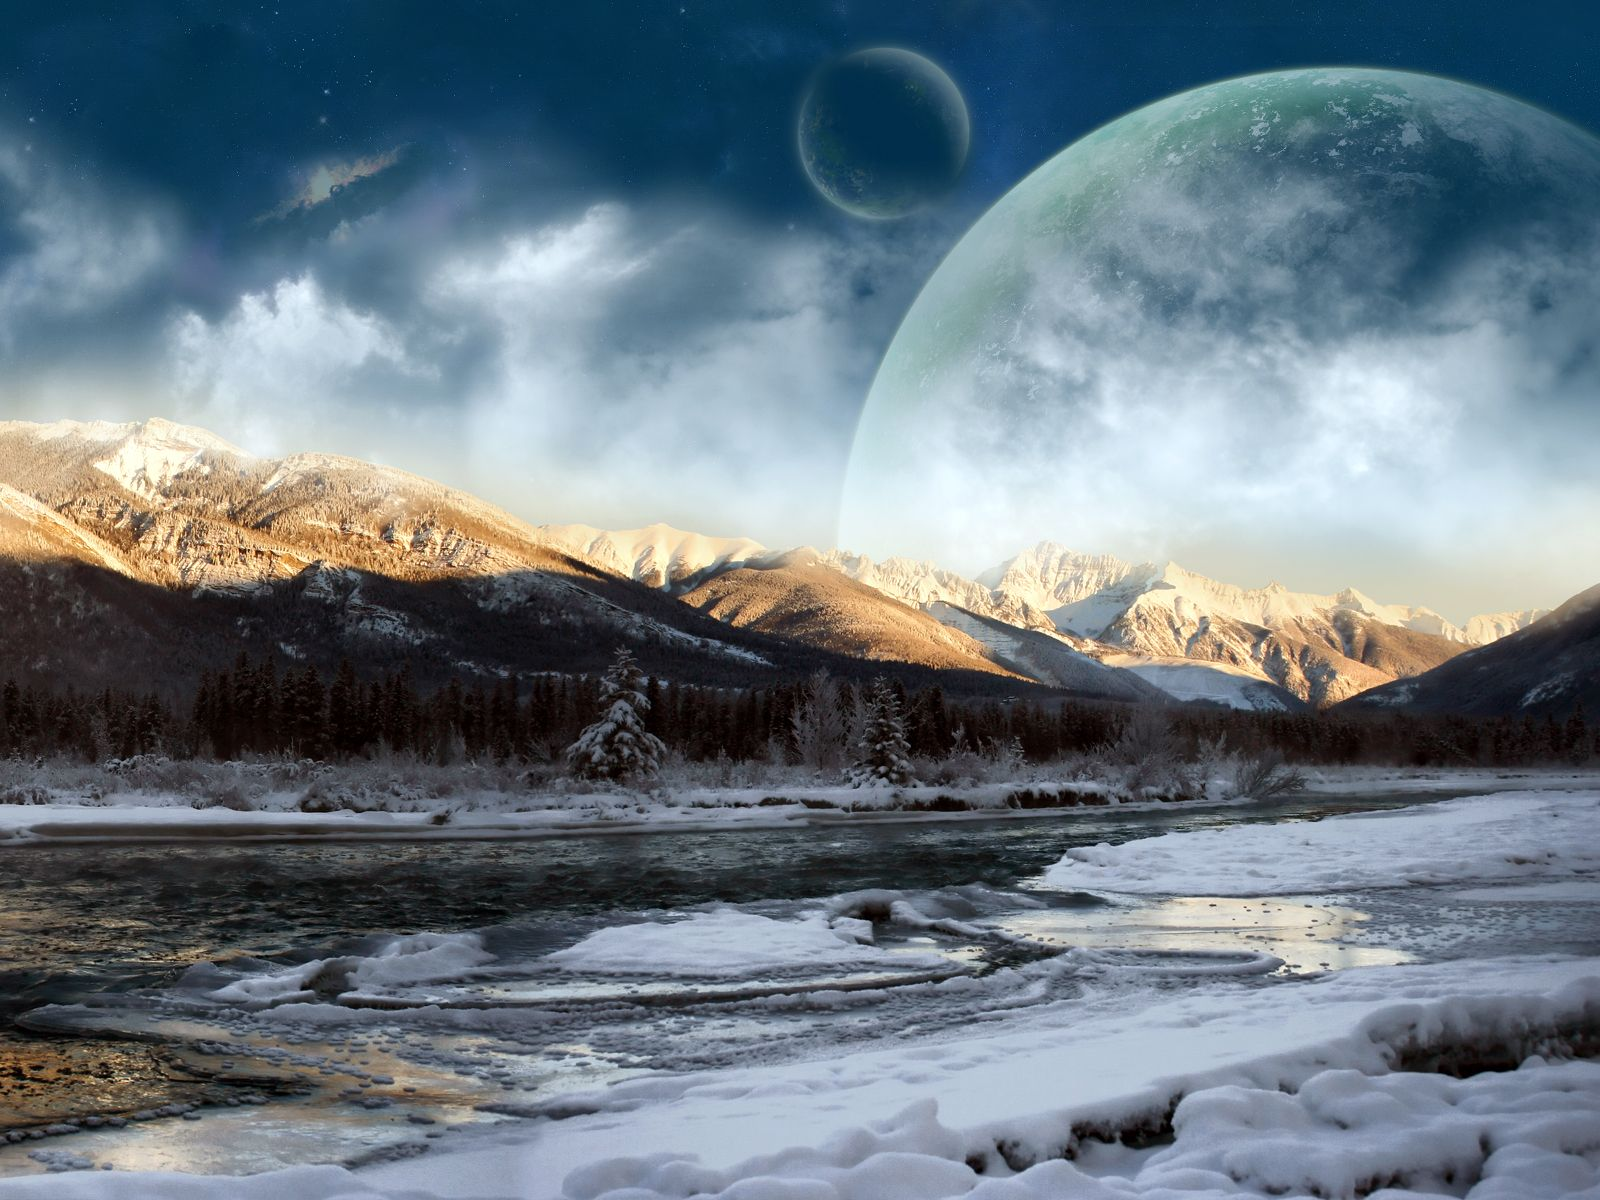 Free Screensavers And Wallpapers For Laptops Free Moon Mountains Laptop Wallpaper Wallpaper Landscape Wallpaper Laptop Wallpaper Hd Wallpapers For Laptop